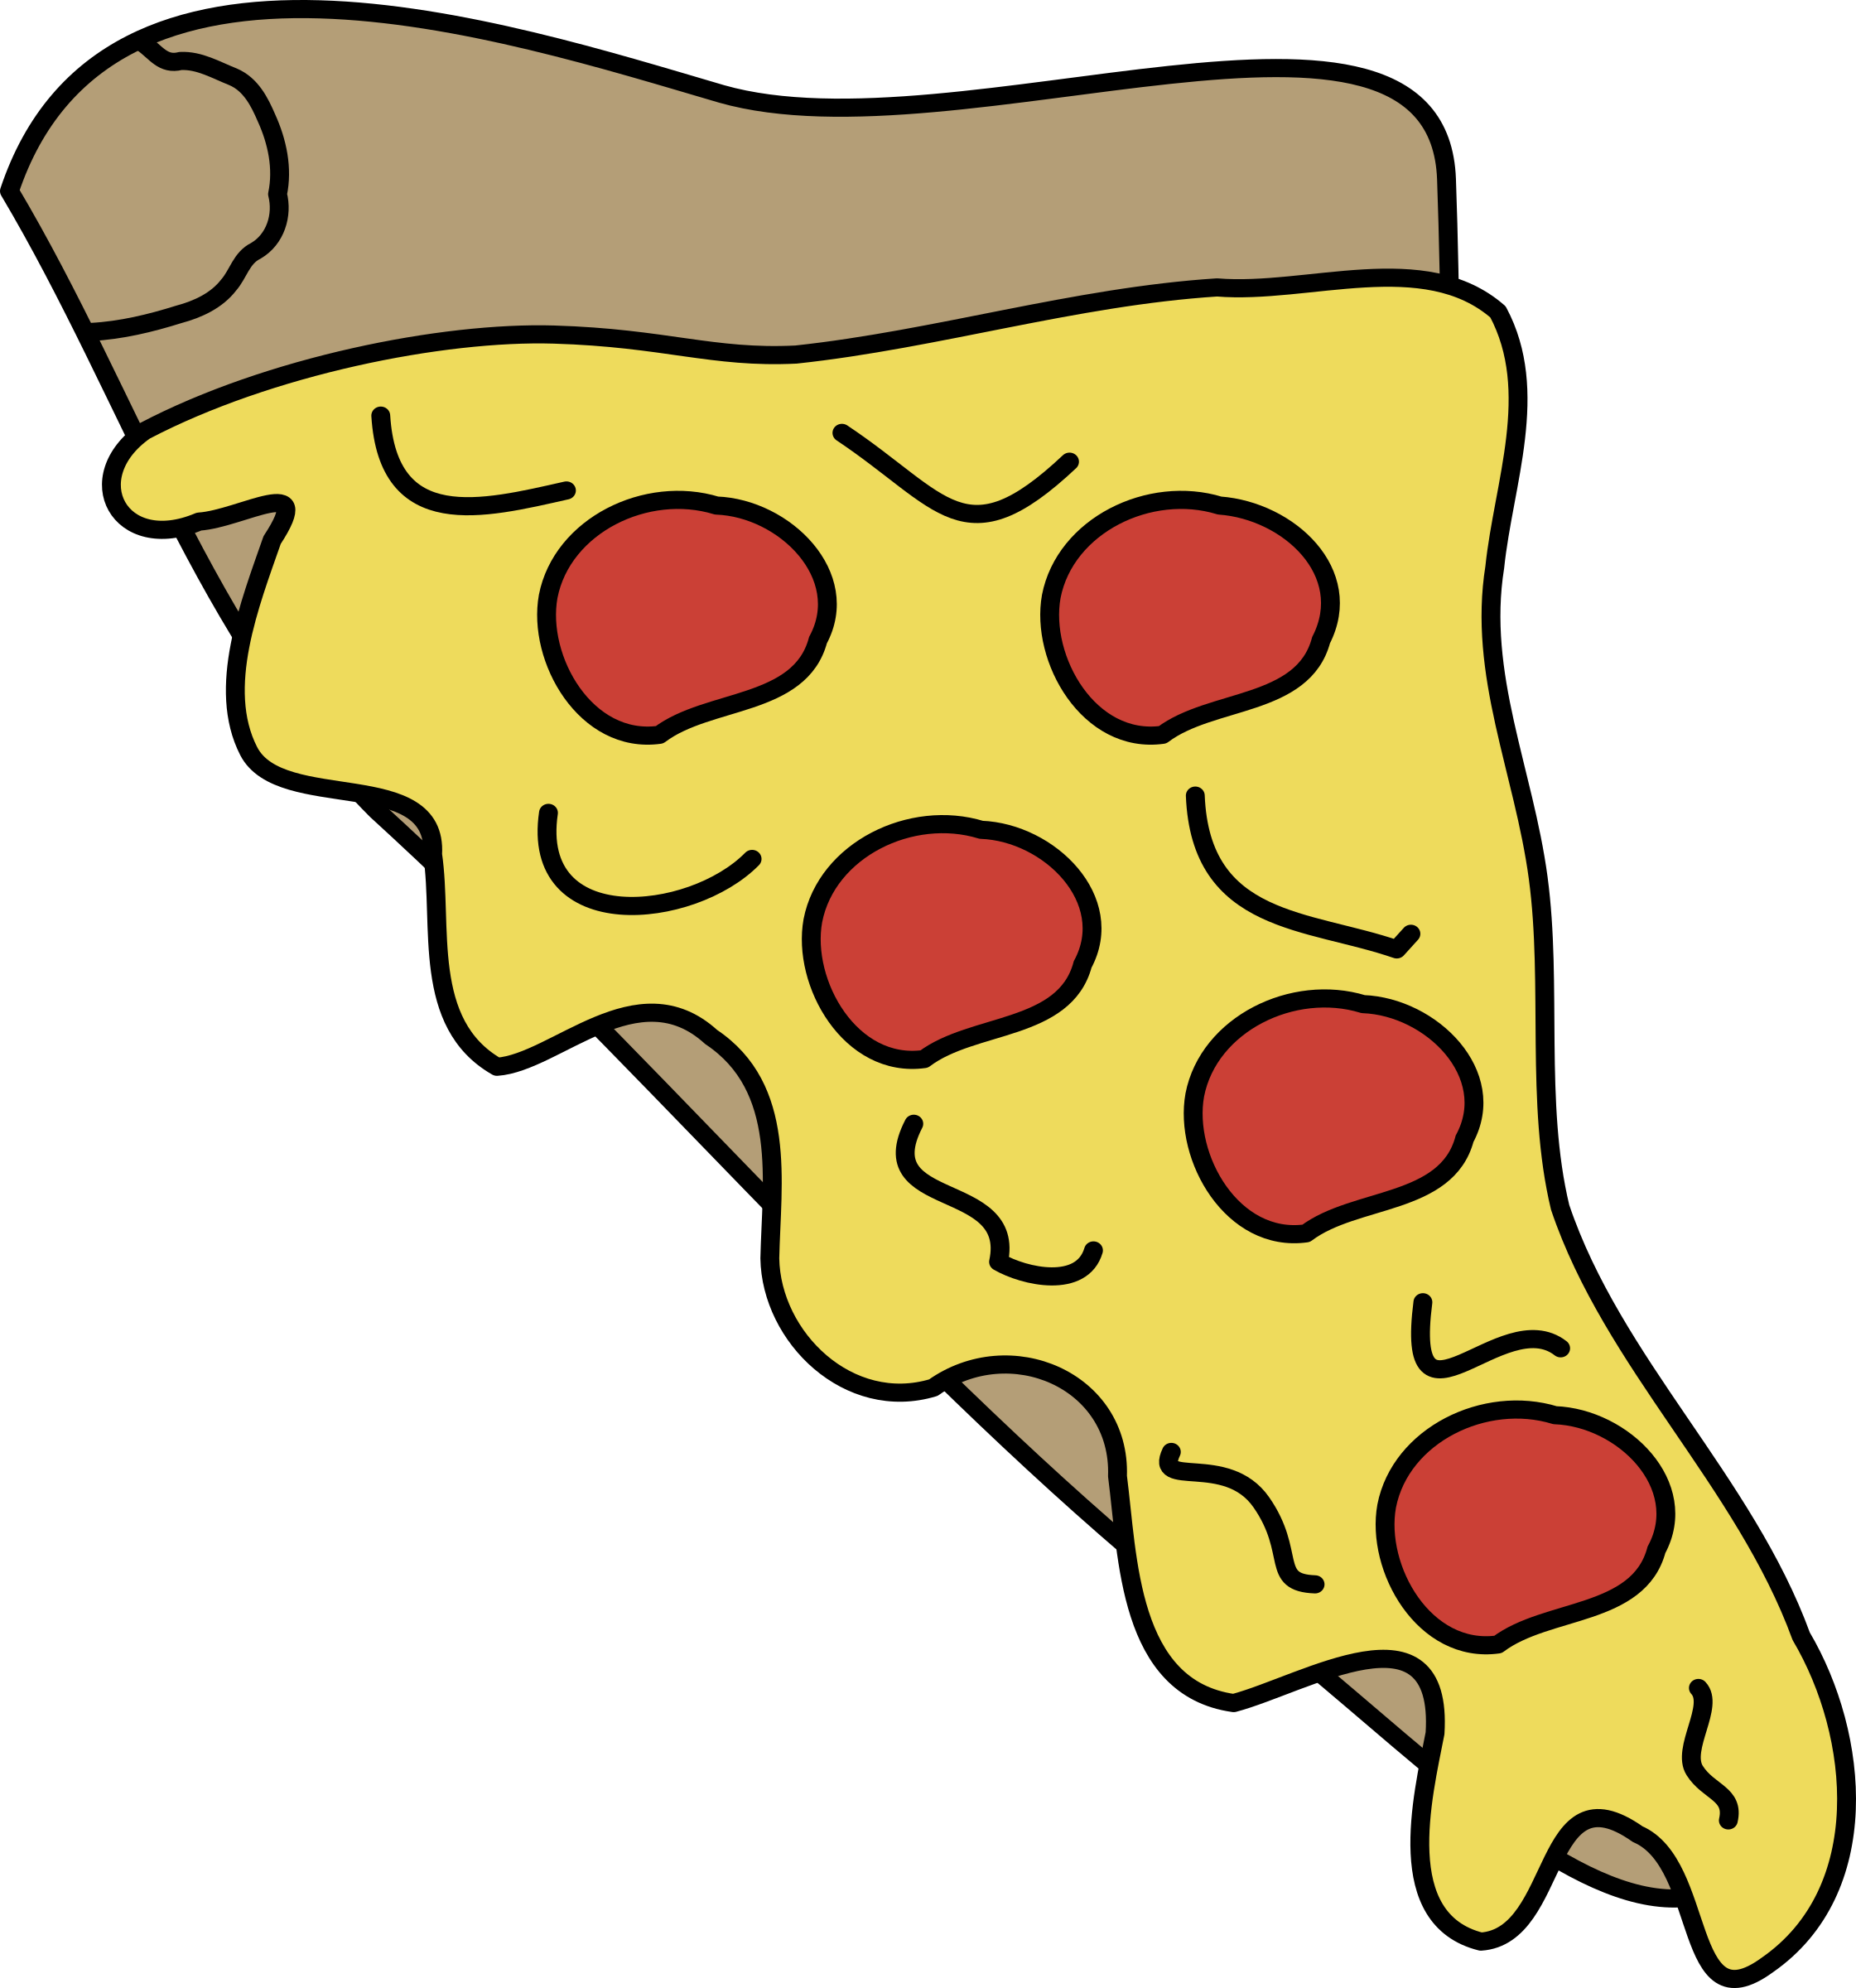 meltypizza